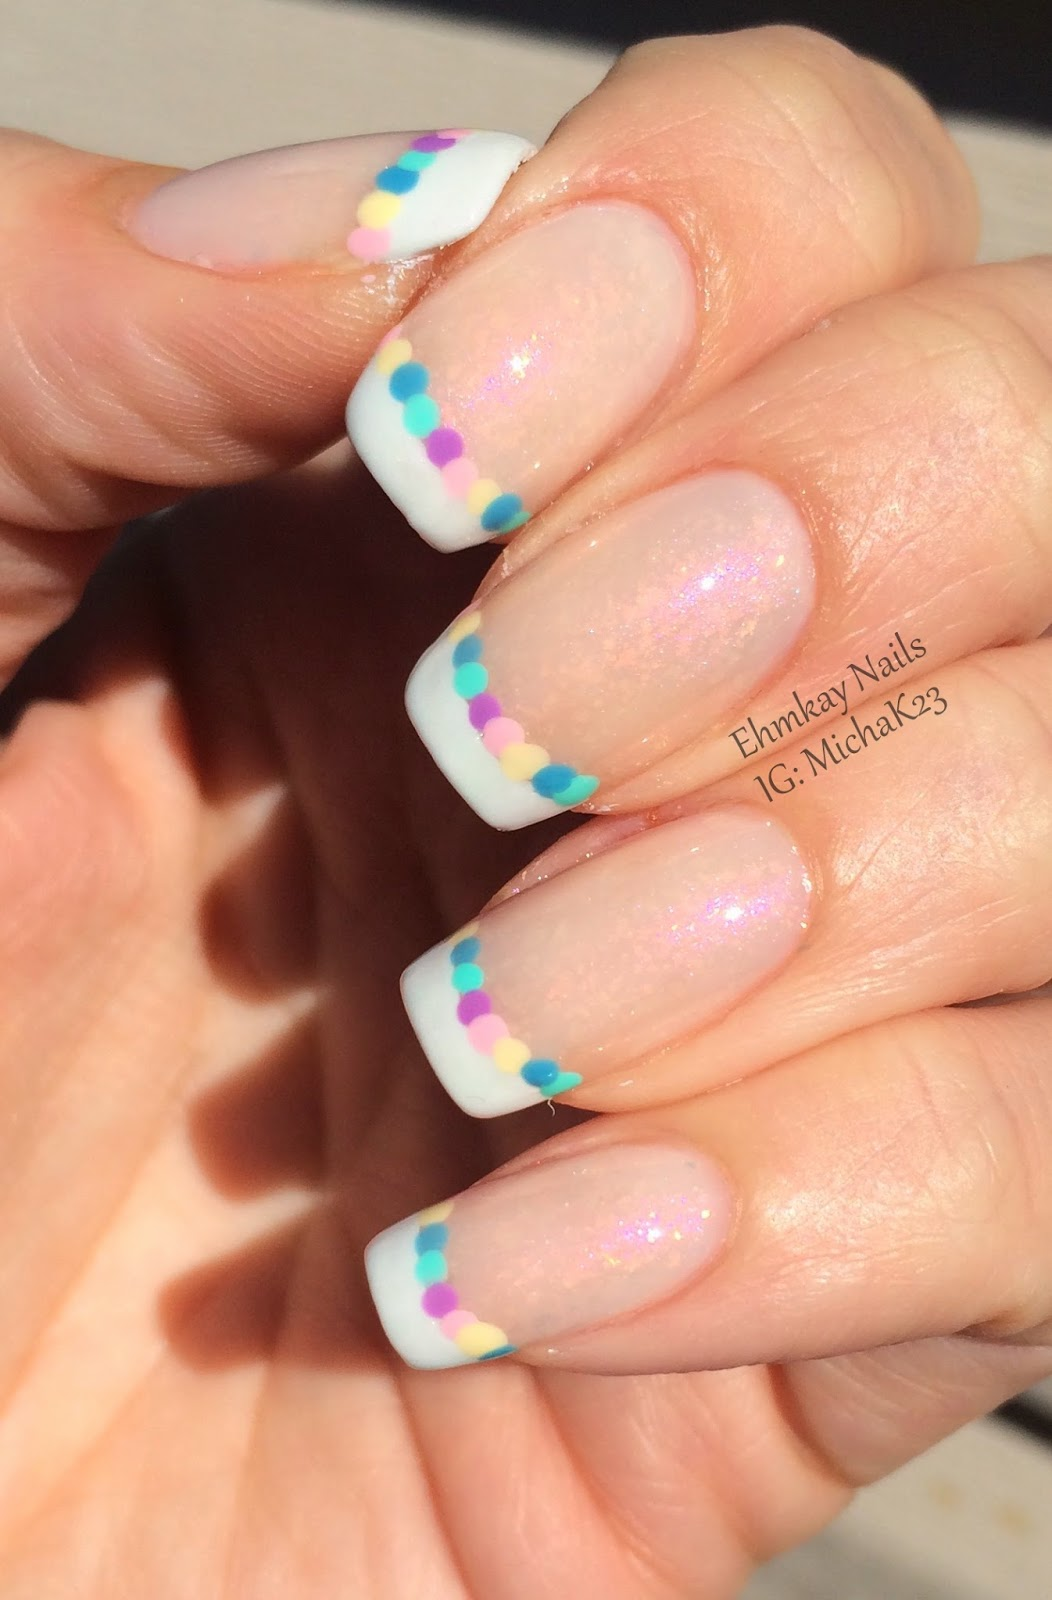 Ehmkay Nails Happy New Year S Eve Nail Art Stamping: Ehmkay Nails: Easter Egg French Manicure